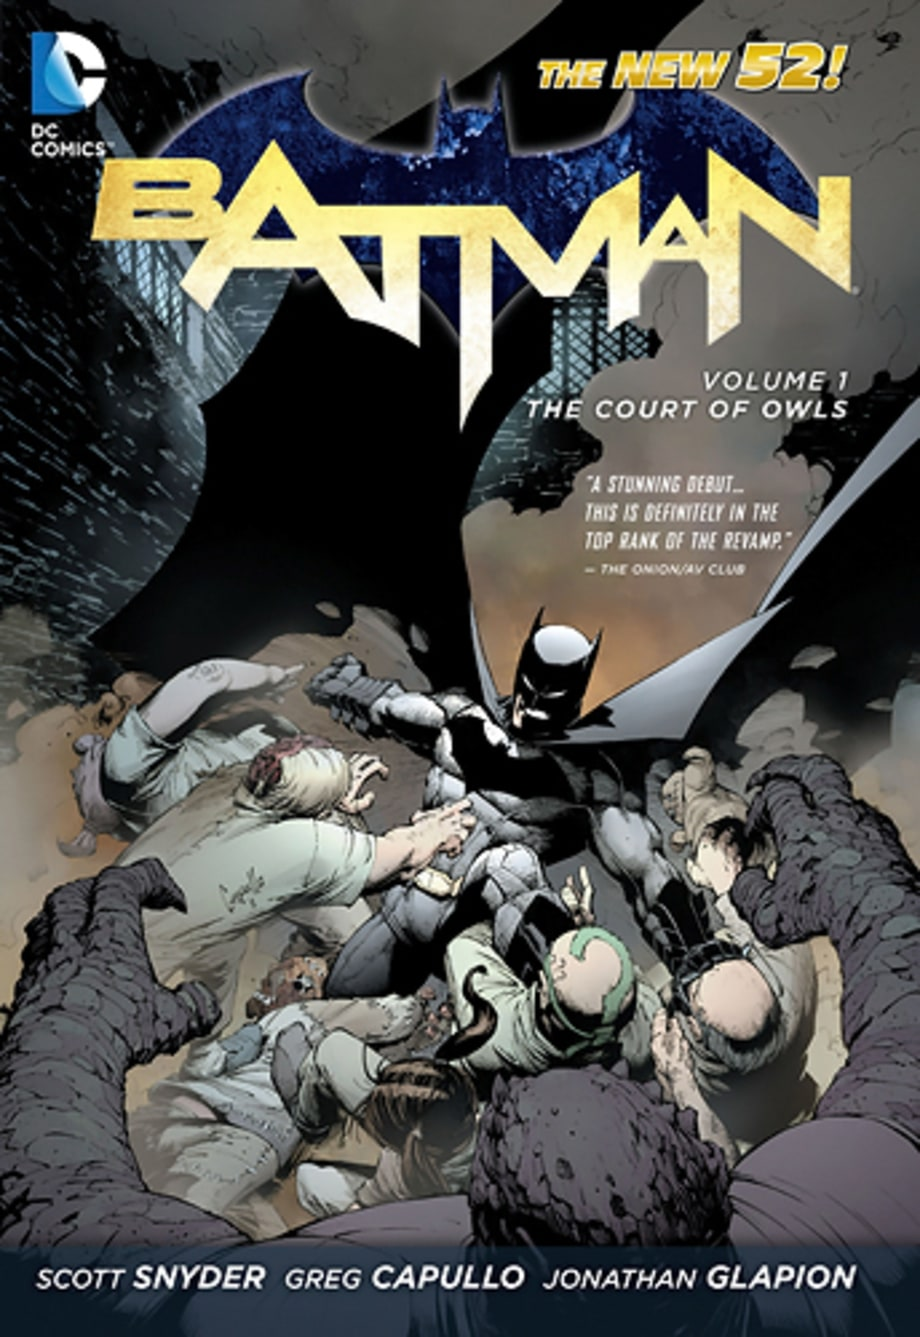 15. 'Batman Vol. 1: The Court of Owls'